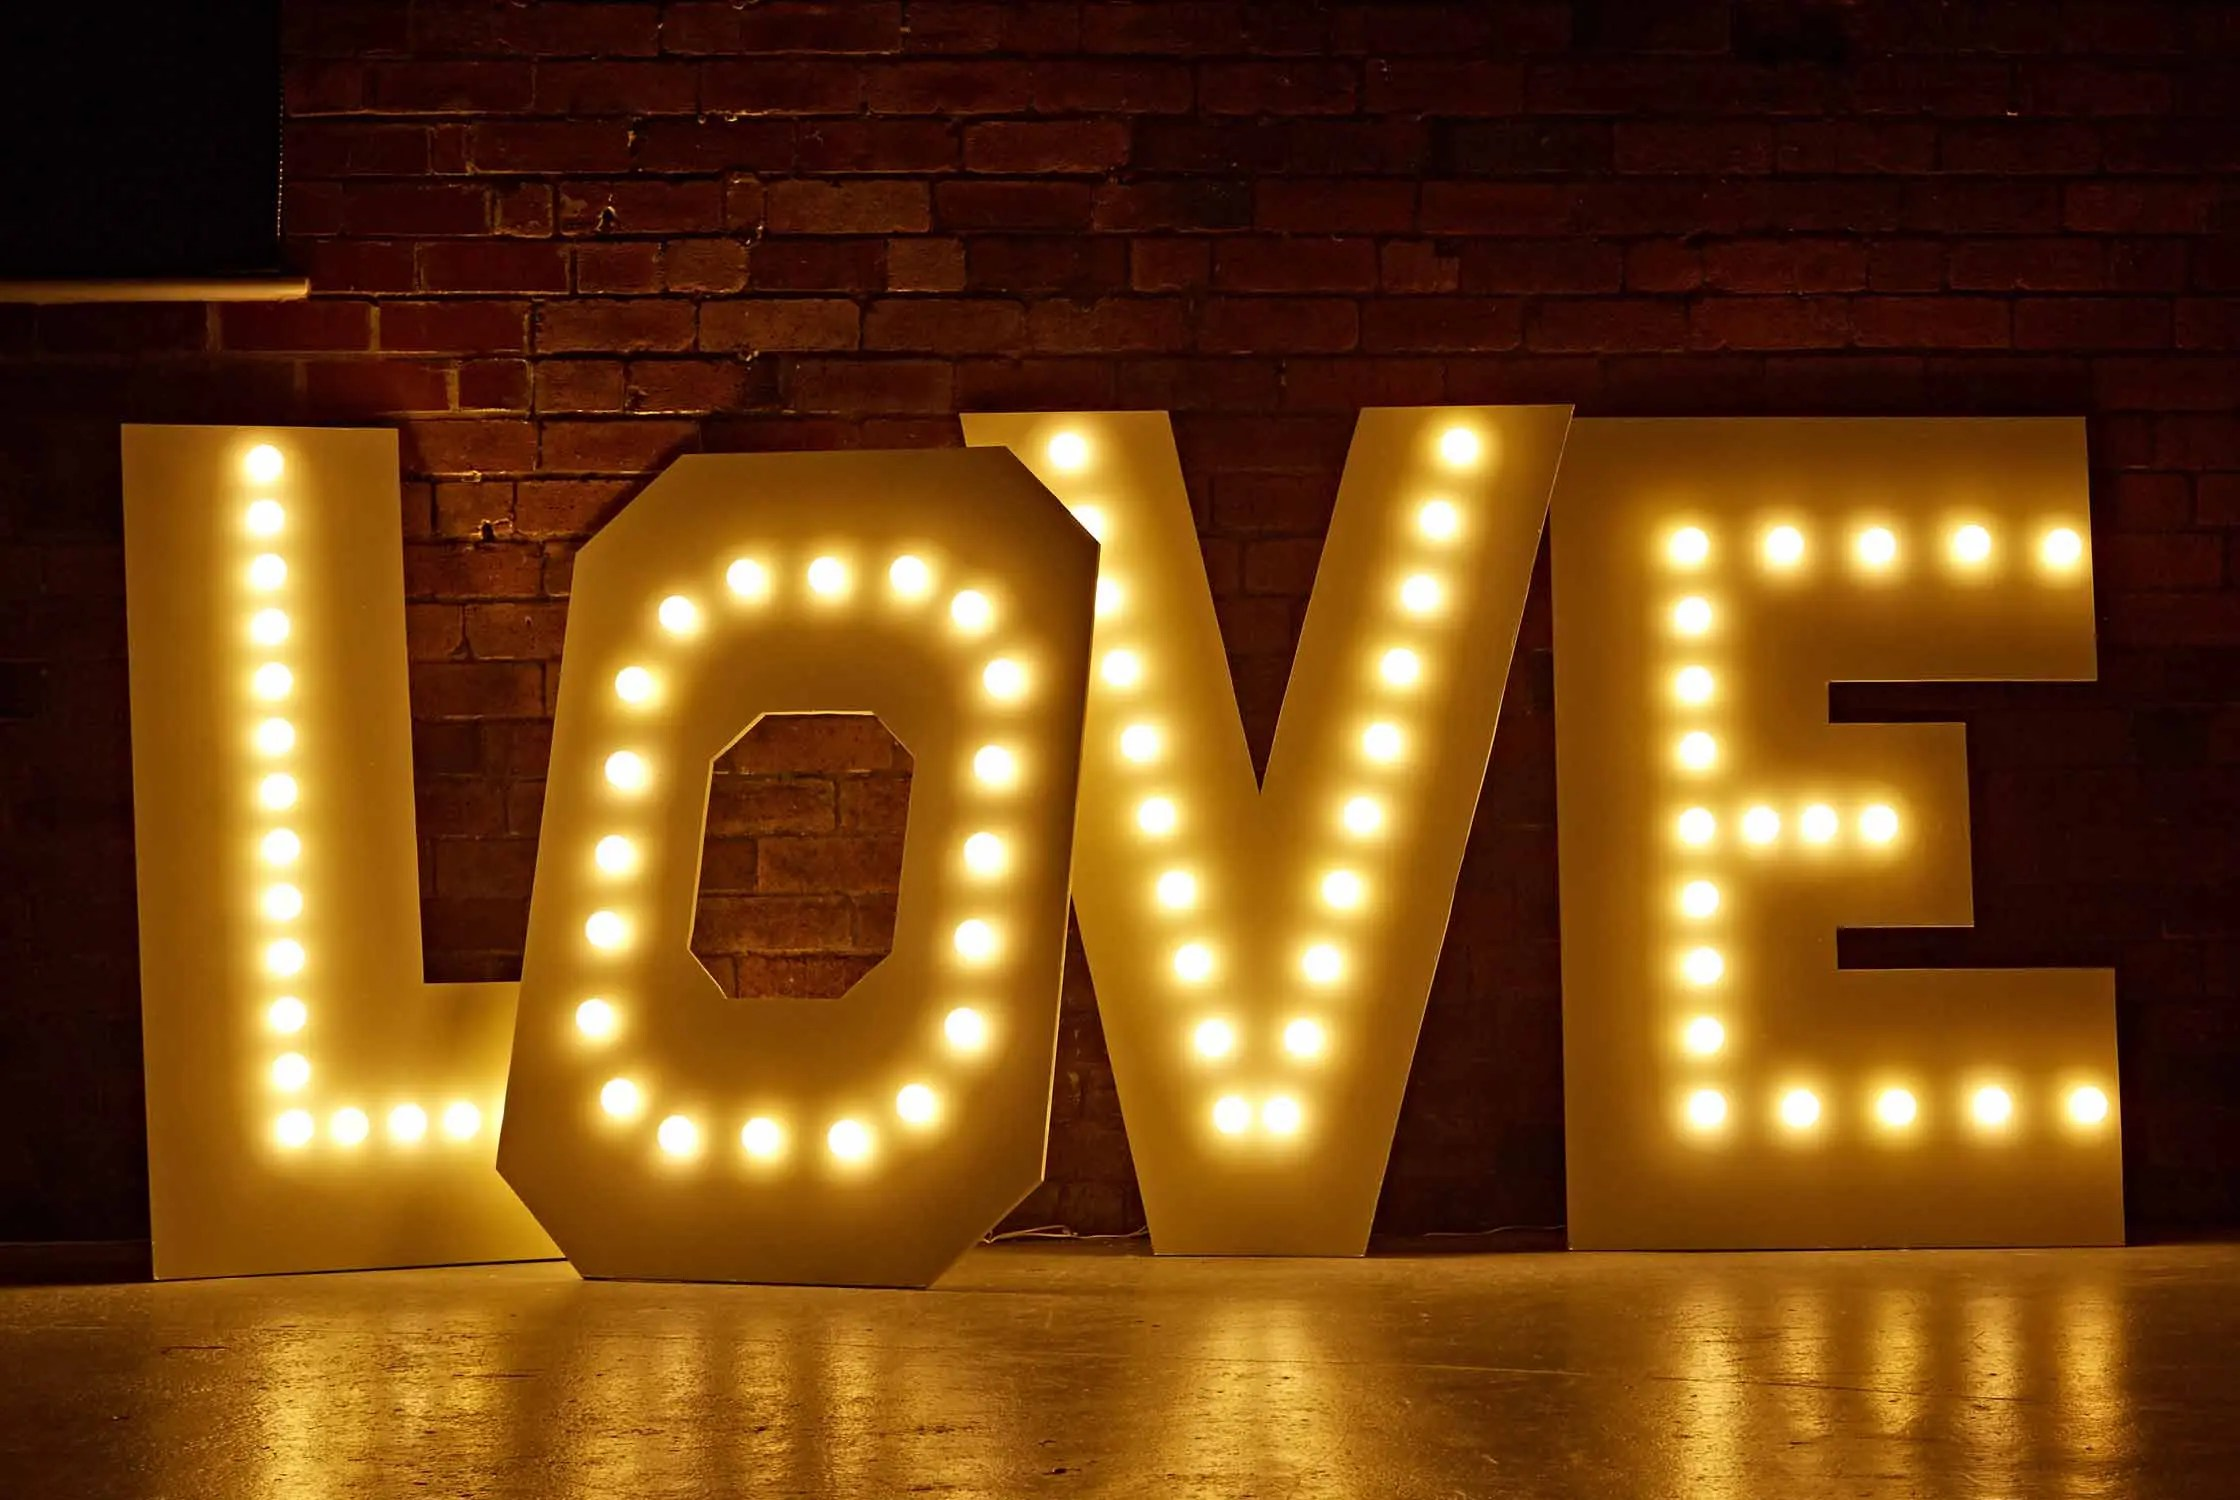 Diy Bank Holiday Offers Diy Marquee Love Letters Lights4fun Co Uk